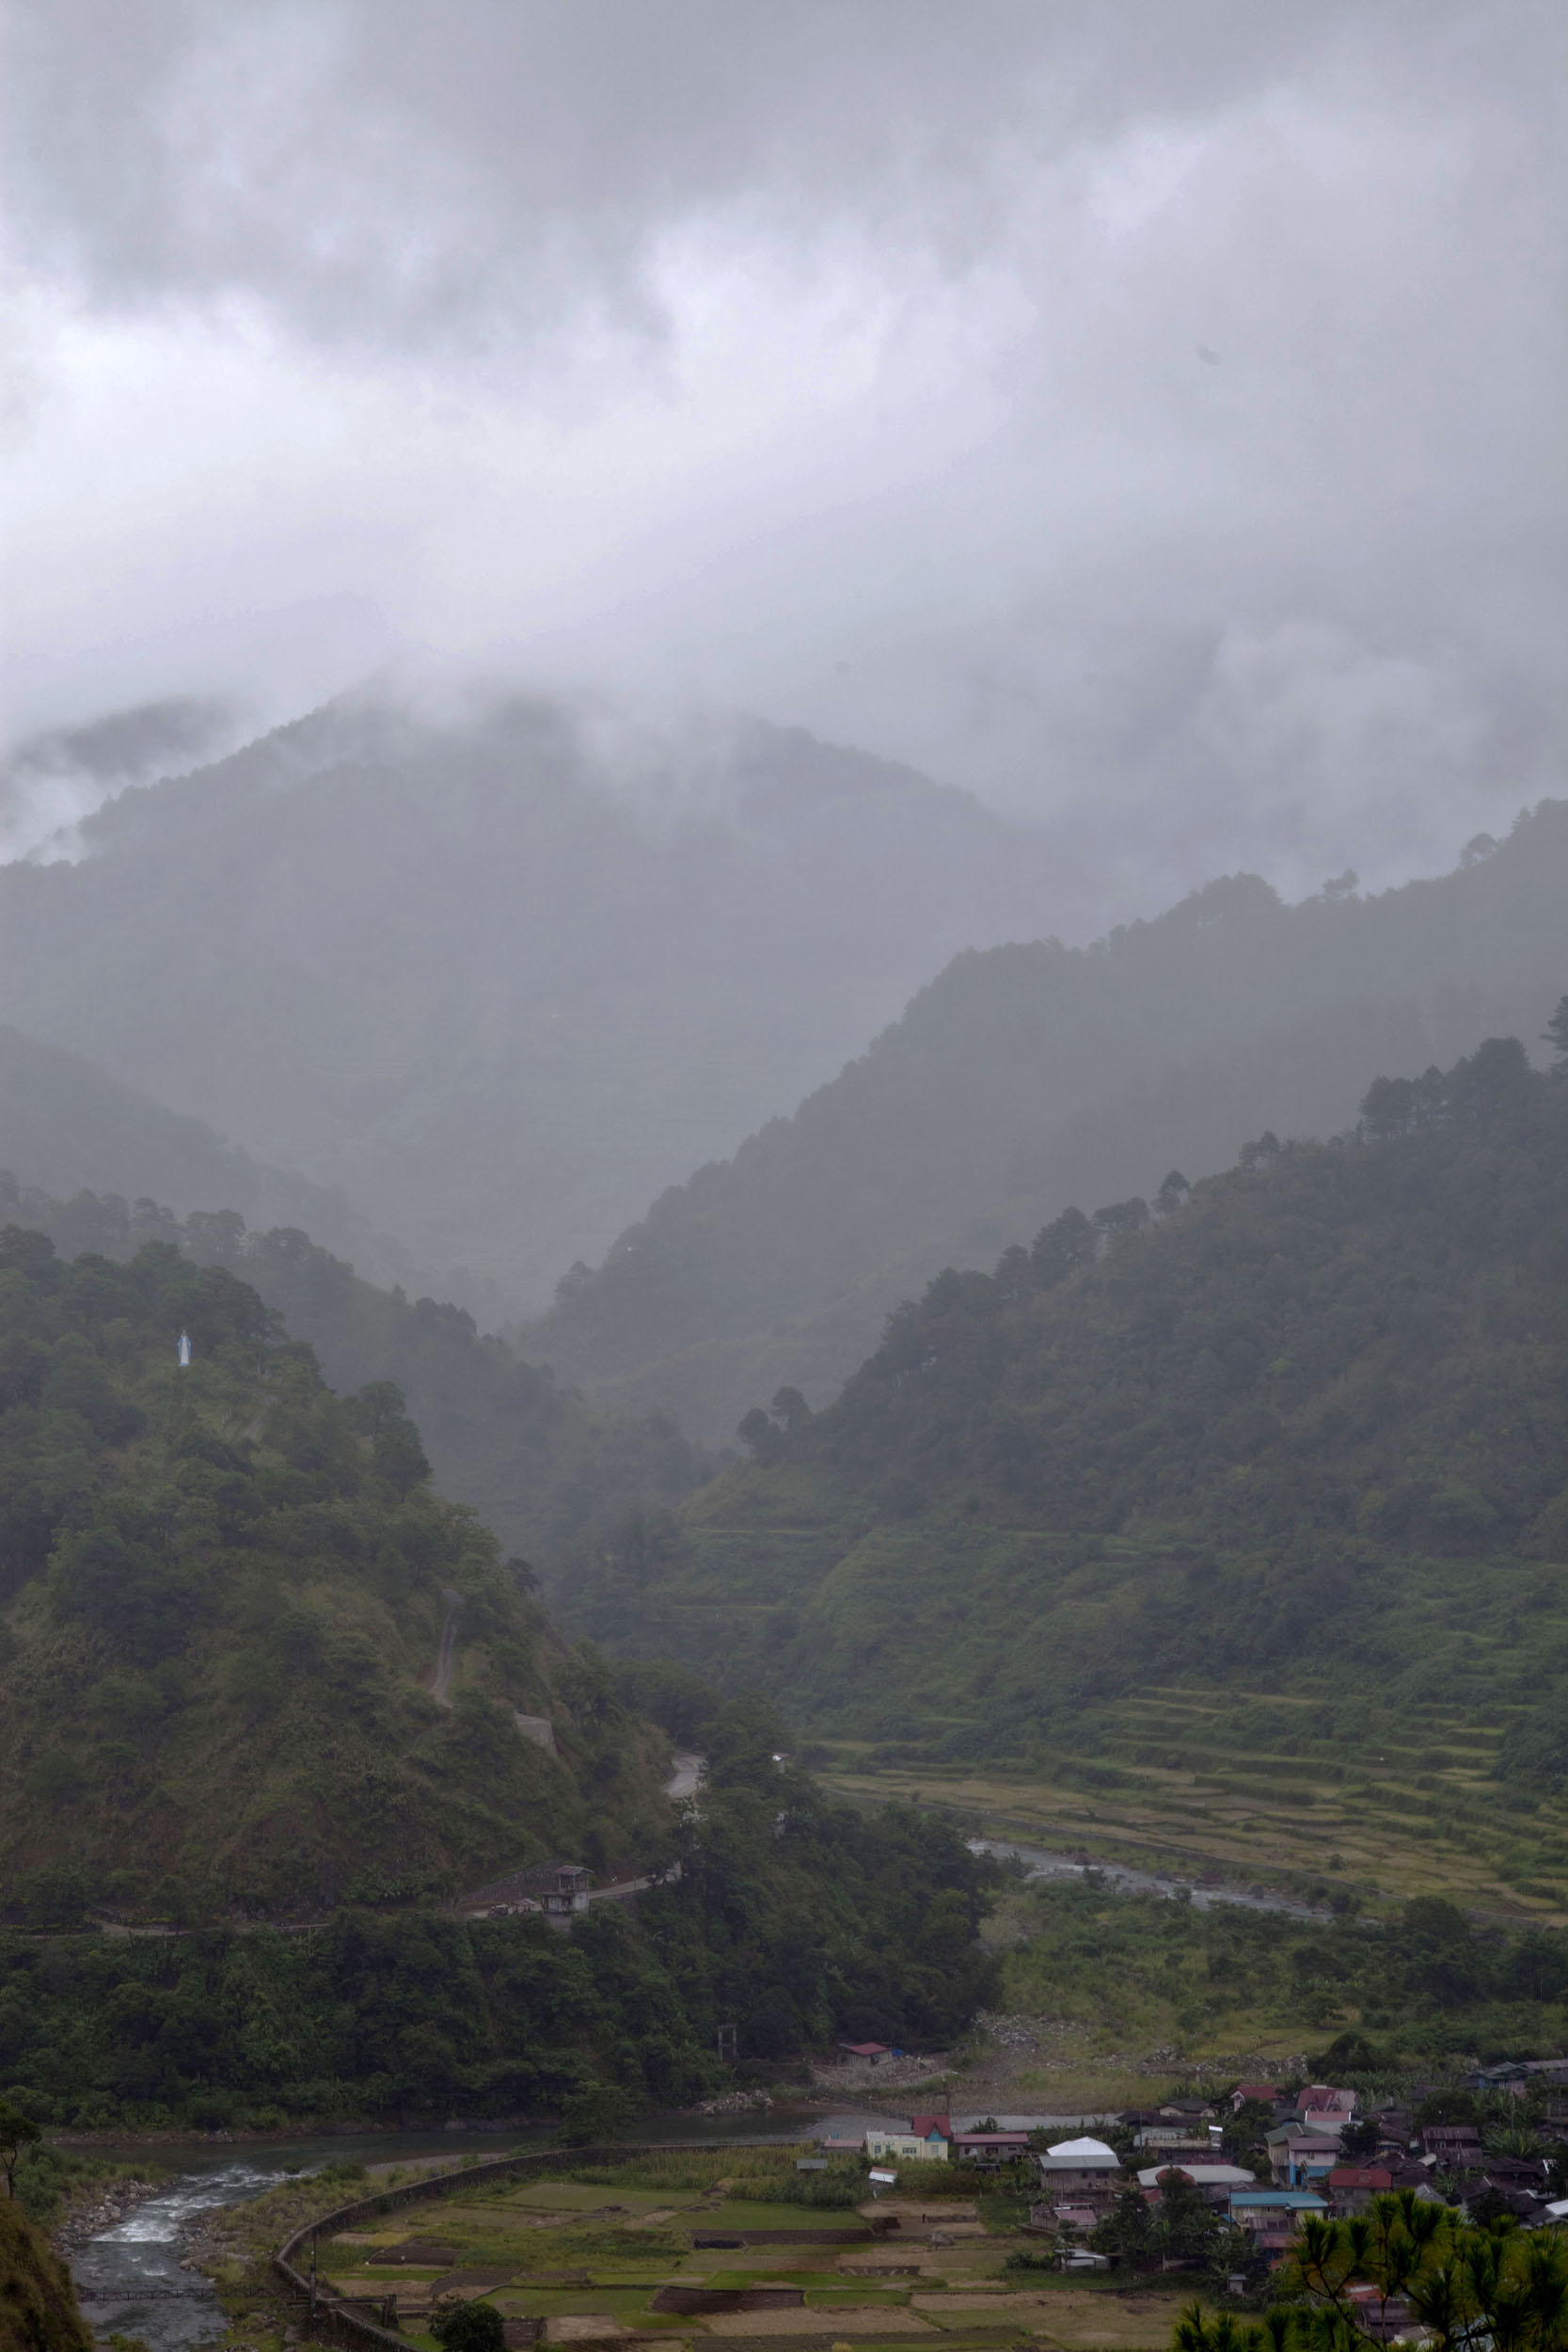 Panoramic views along the Kabayan Rd Halsema Highway from Baguio to Sagada Aug 2011 02